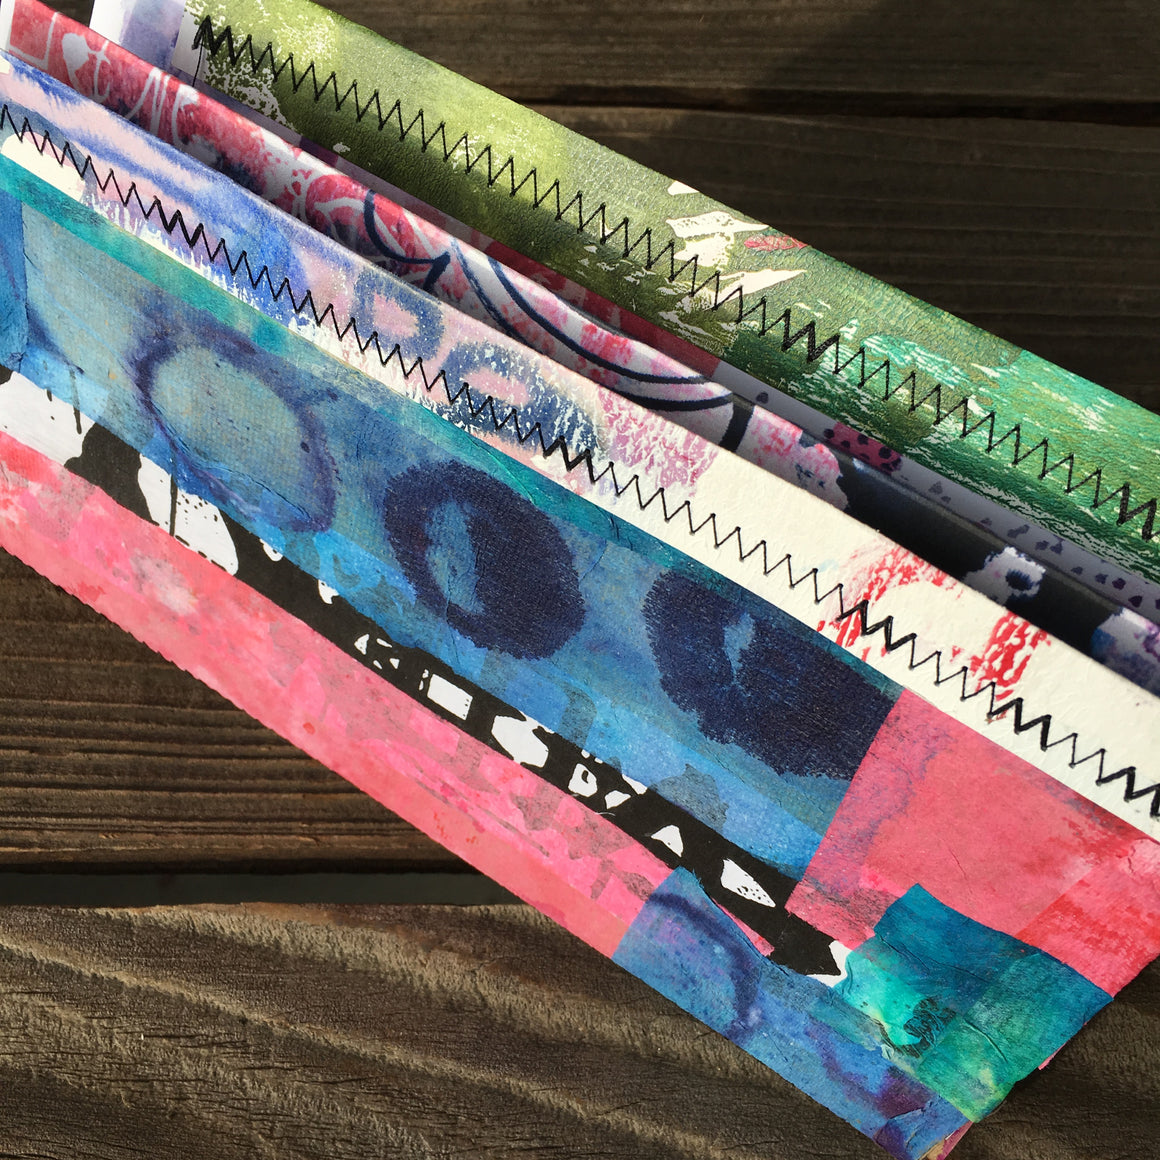 {be FREE} FREE spirit handmade art journal by traci bautista